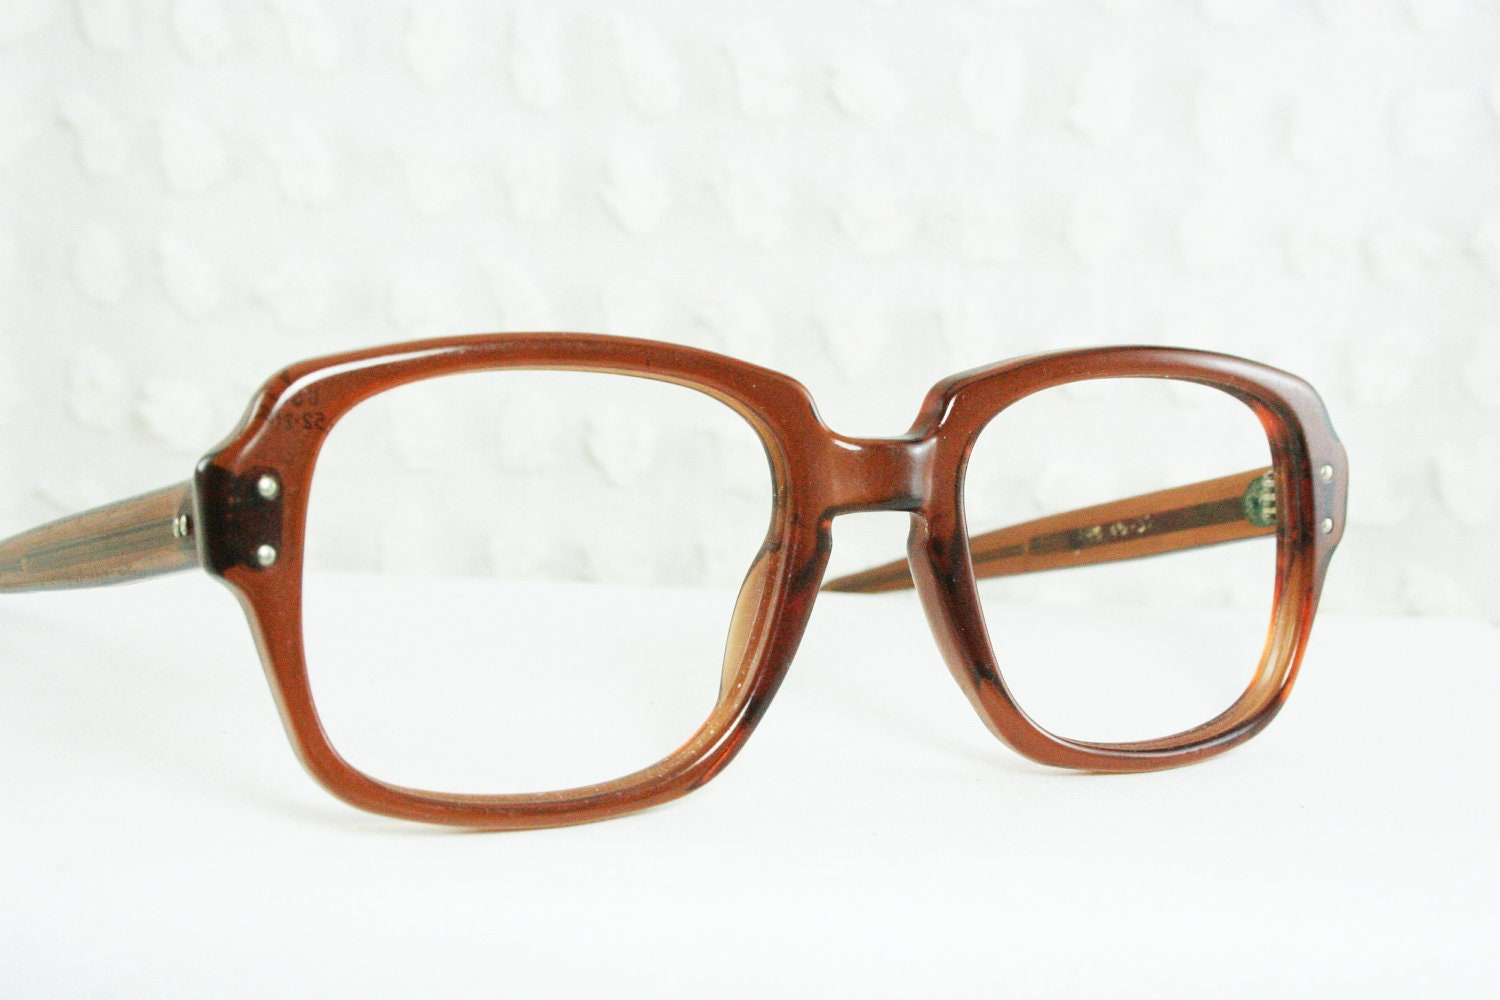 Military Issue 1990s Thick Horn Rim Eyeglasses by ...